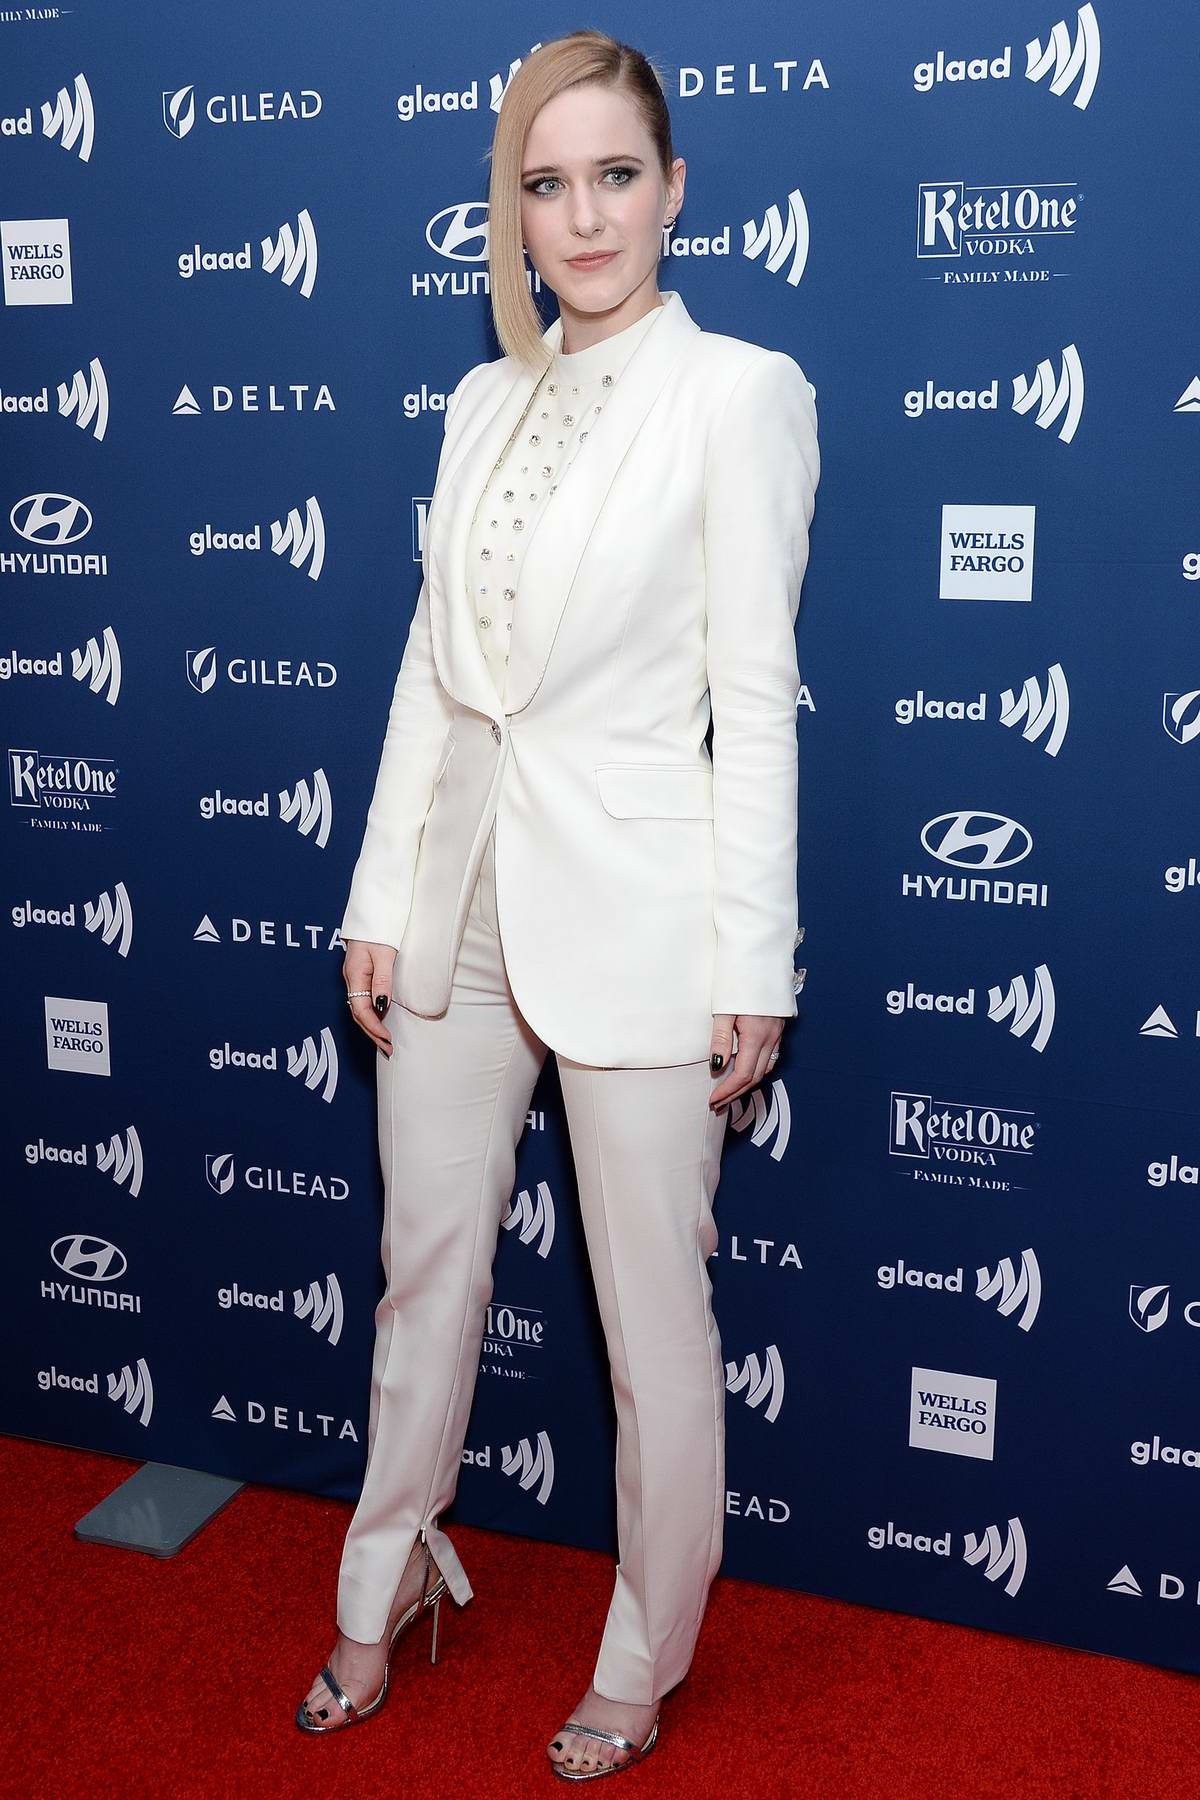 Rachel Brosnahan attends the 30th Annual GLAAD Media Awards in New York City